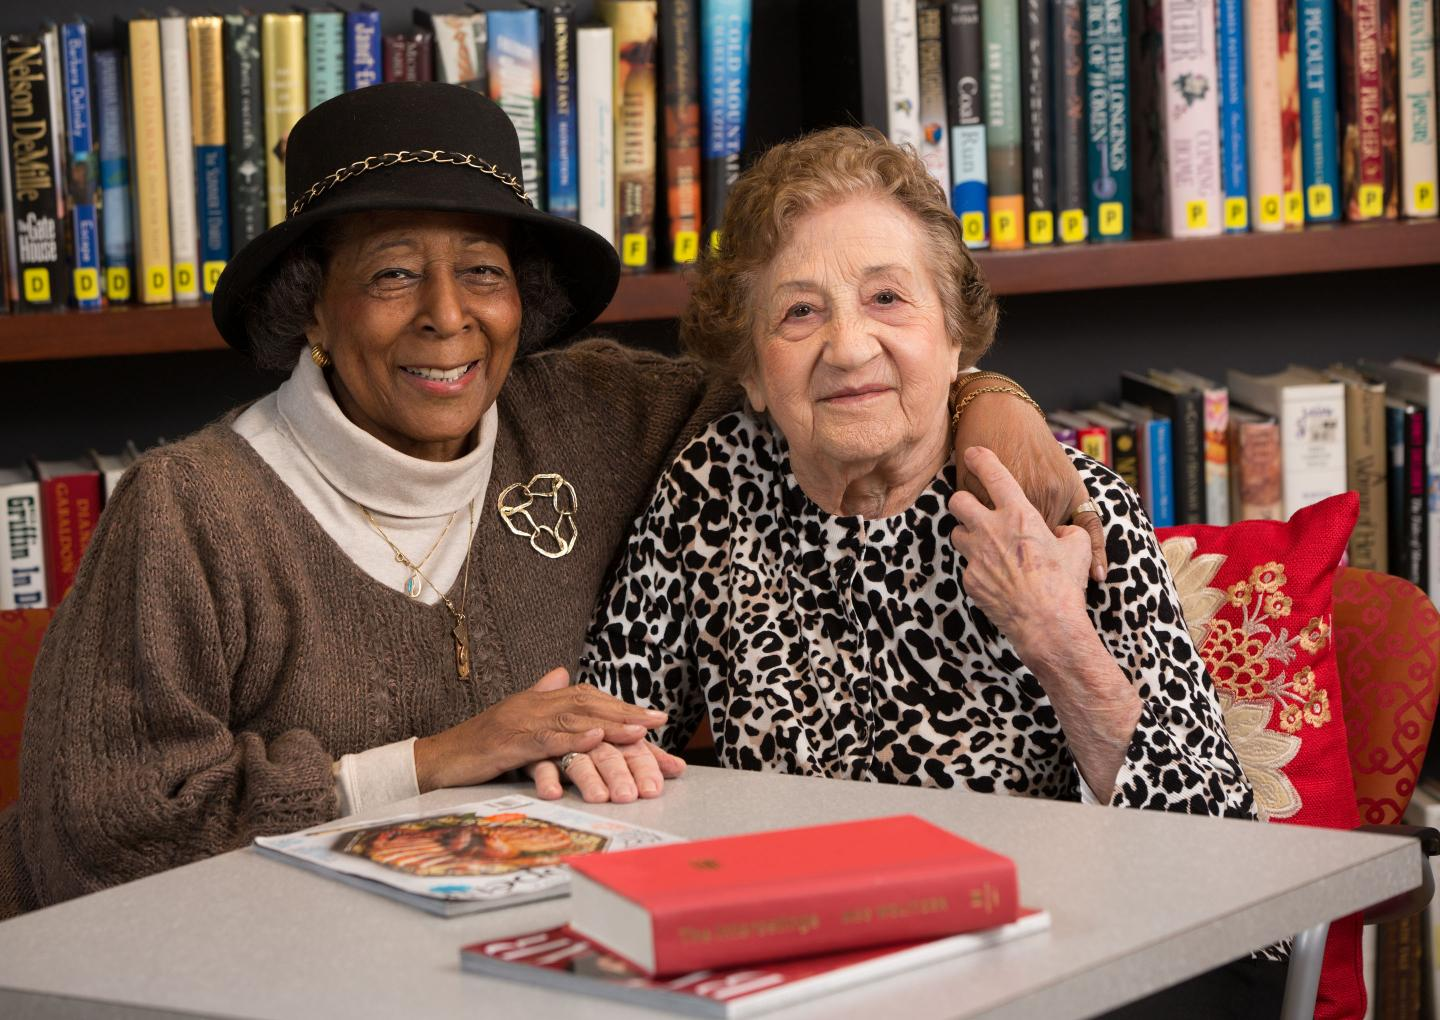 Two older women sit together in a library at a table with books and magazines.